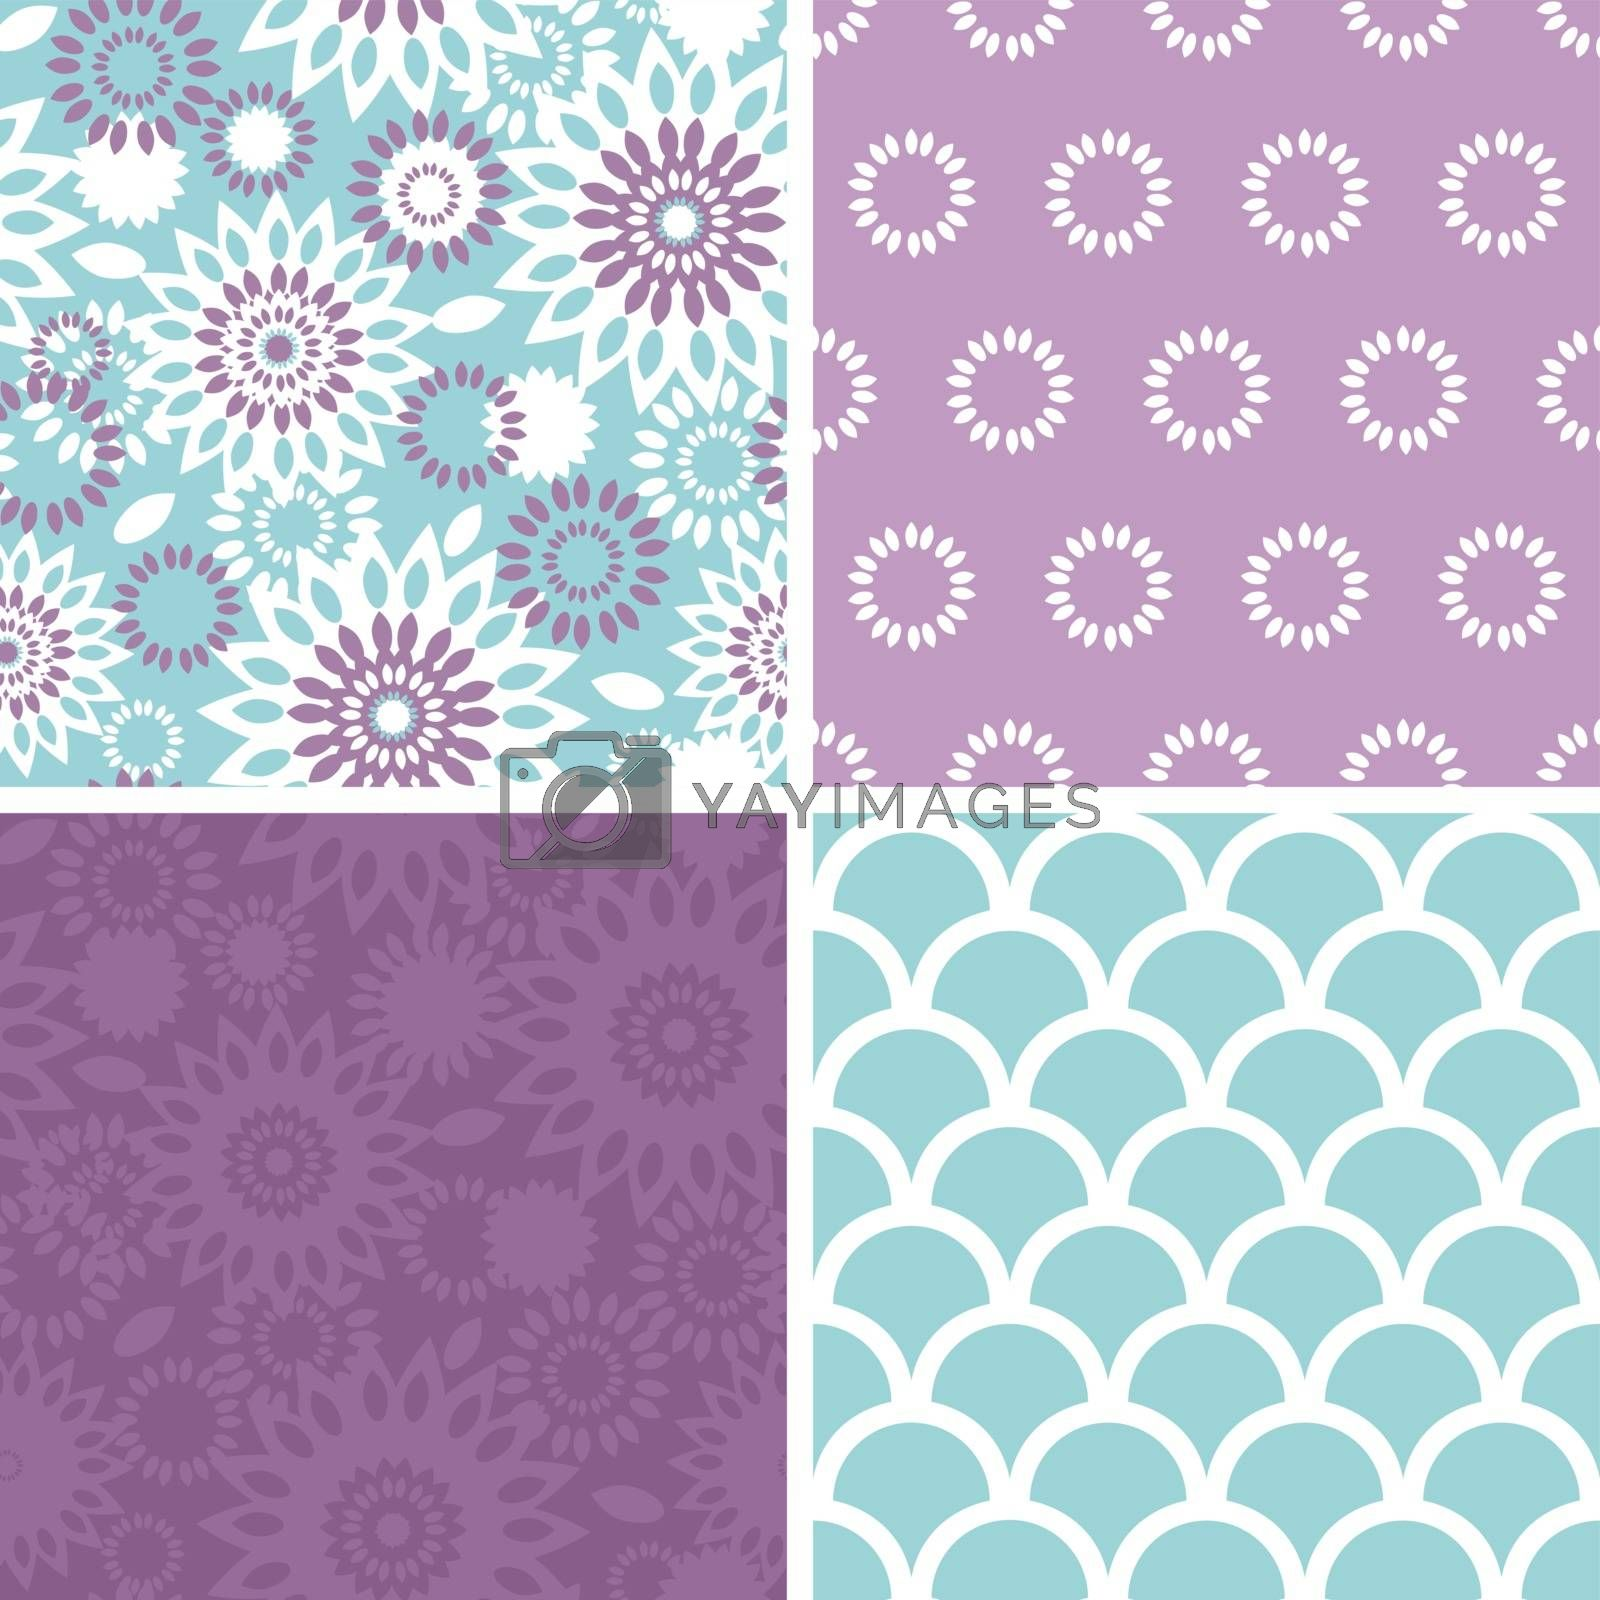 Vector purple and blue floral abstract set of four matching repeat patterns backgrounds graphic design